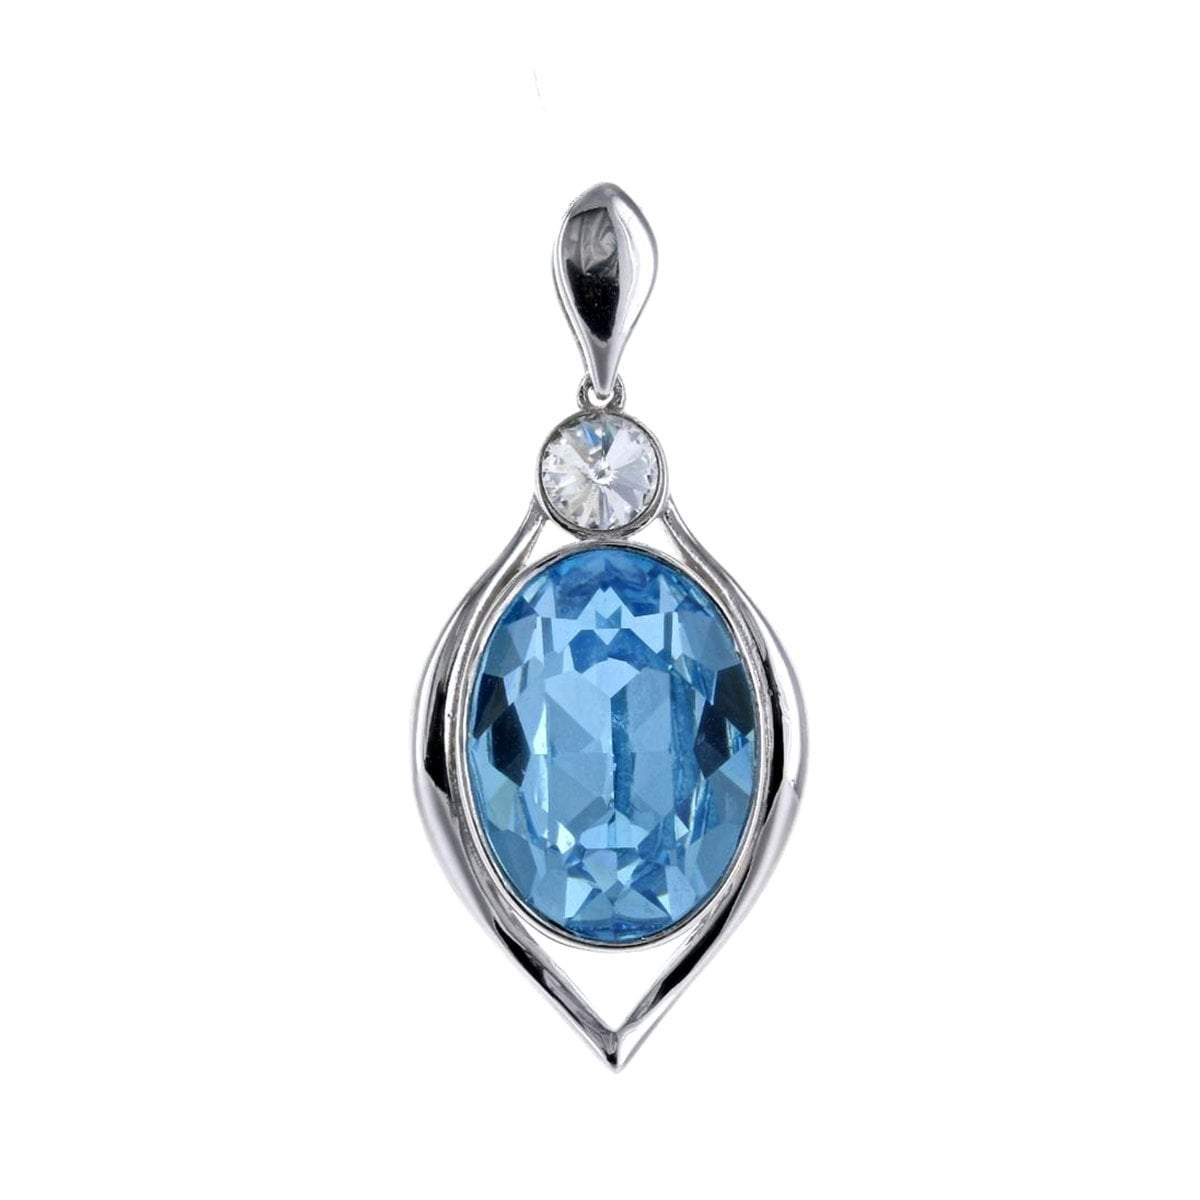 Swarovski Crystal Oval Aquamarine Pendant in Sterling Silver